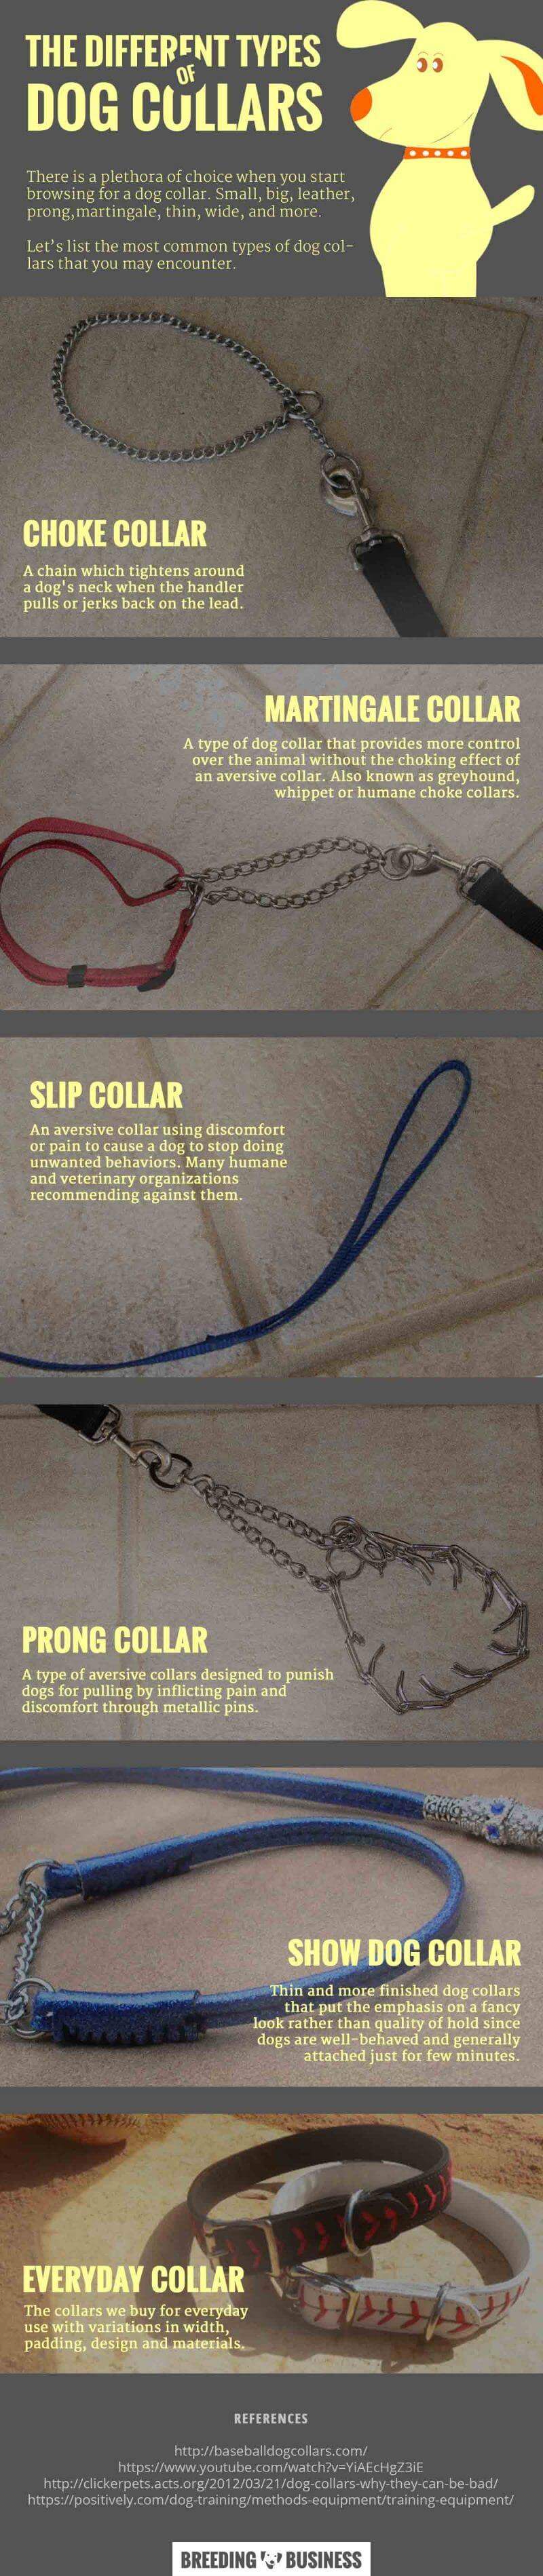 types of dog collars - infographics